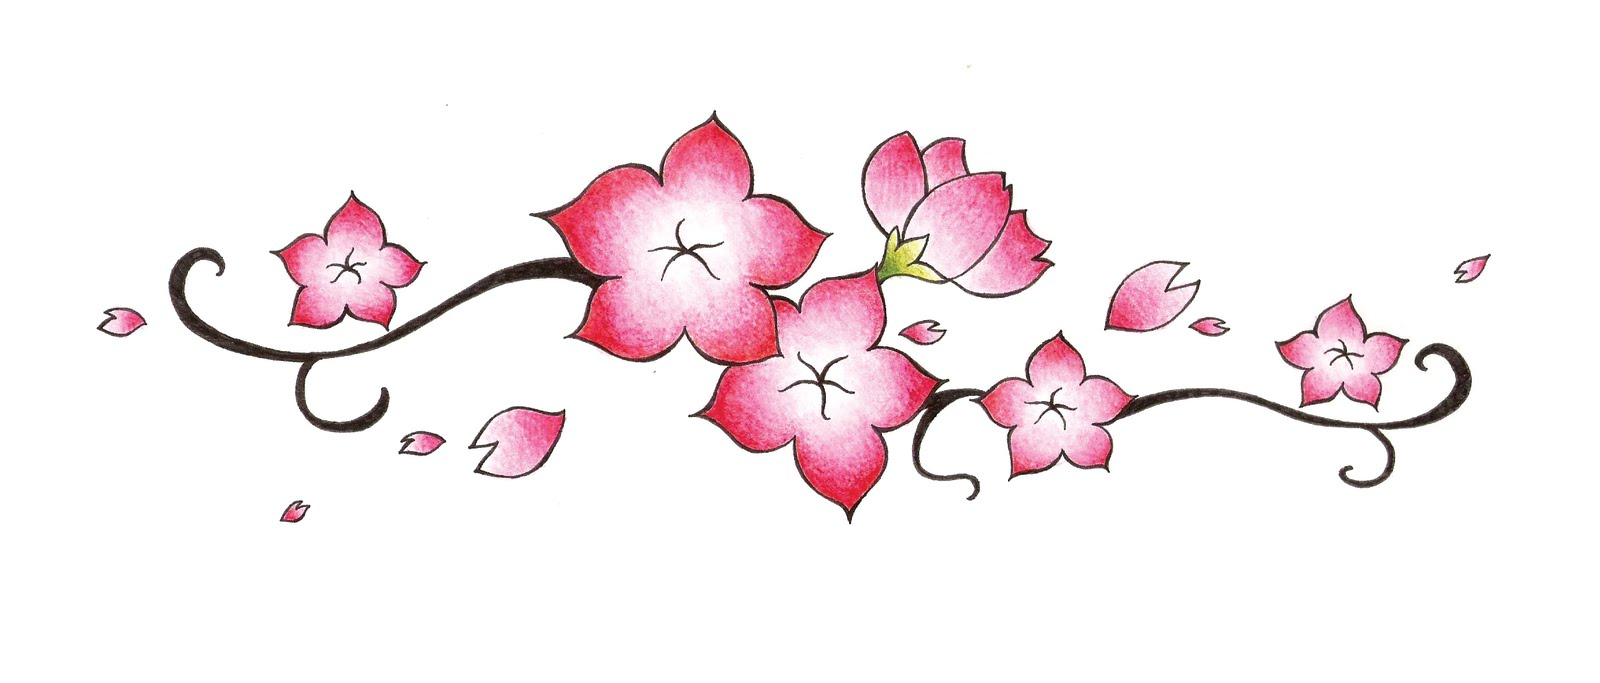 1600x683 Cherry Blossom Flower Drawing Cherry Blossom Drawings Cherry